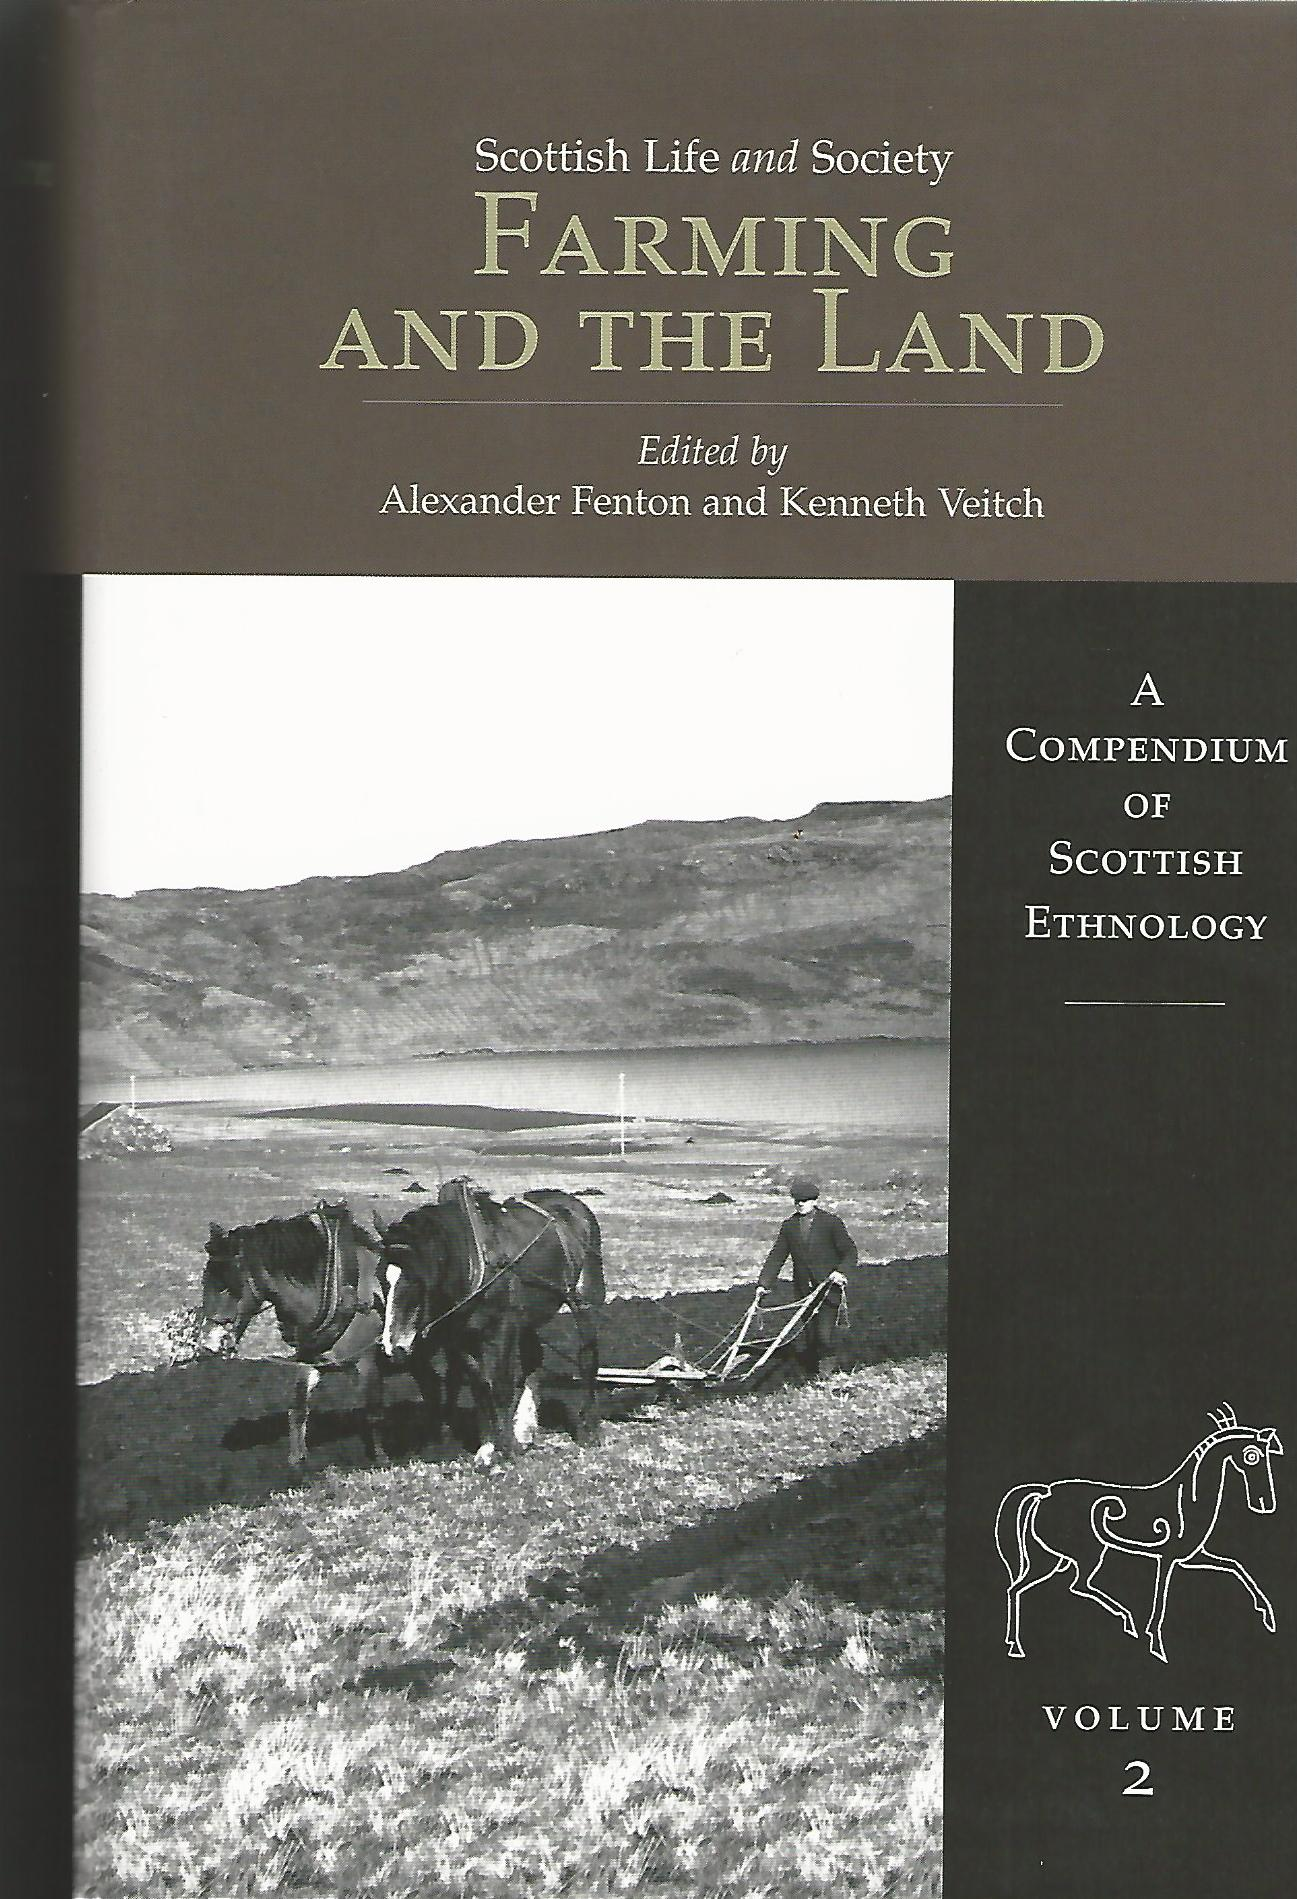 Image for Farming and the Land: Scottish Life and Society Volume 2: A Compendium of Scottish Ethnology